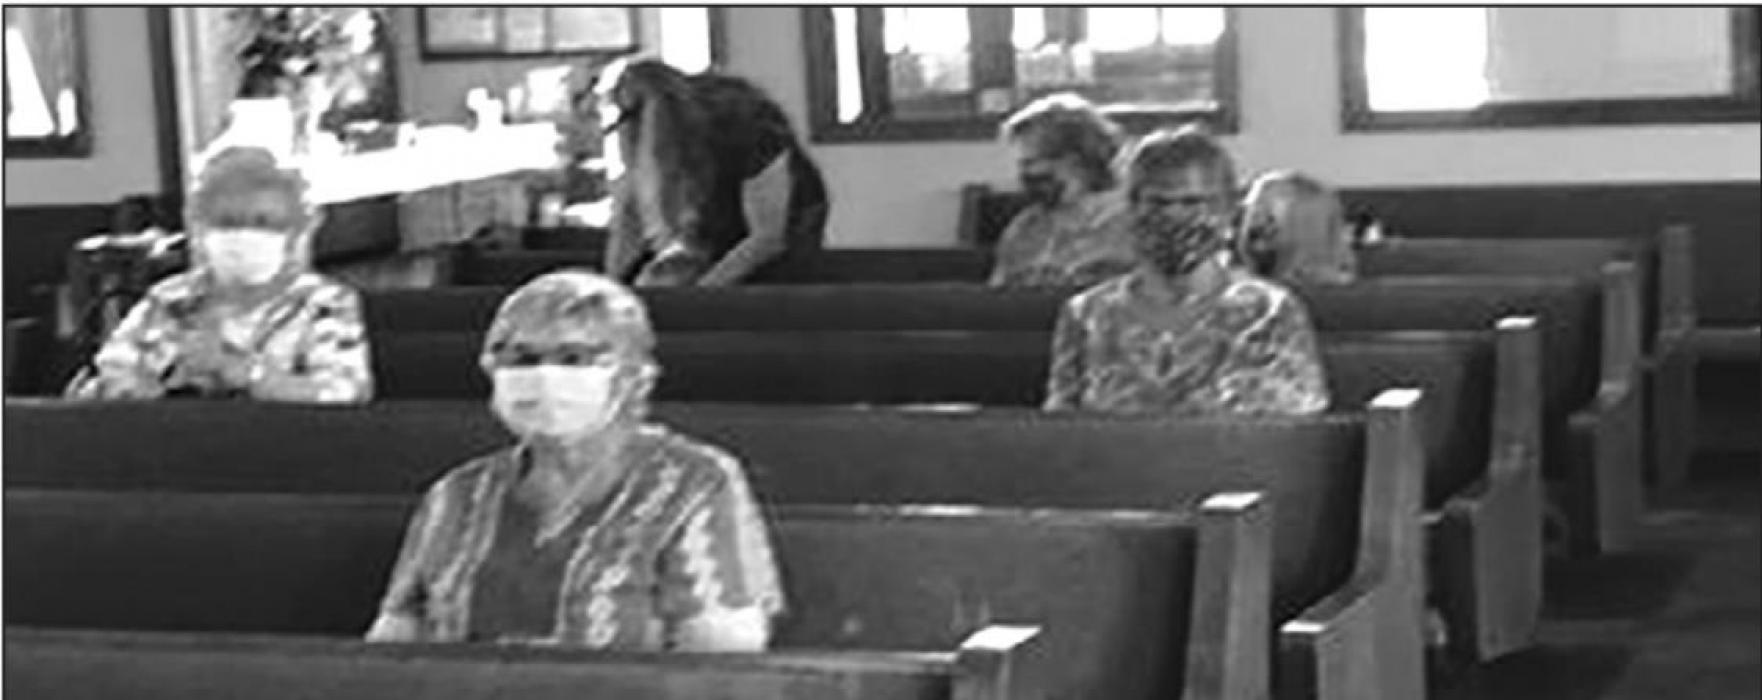 Pictured are some of the worshippers at Faith Lutheran Church in Weimar practicing social distancing, wearing face masks and involved people from a variety of ages (from young children to persons reaching 90 years of age).